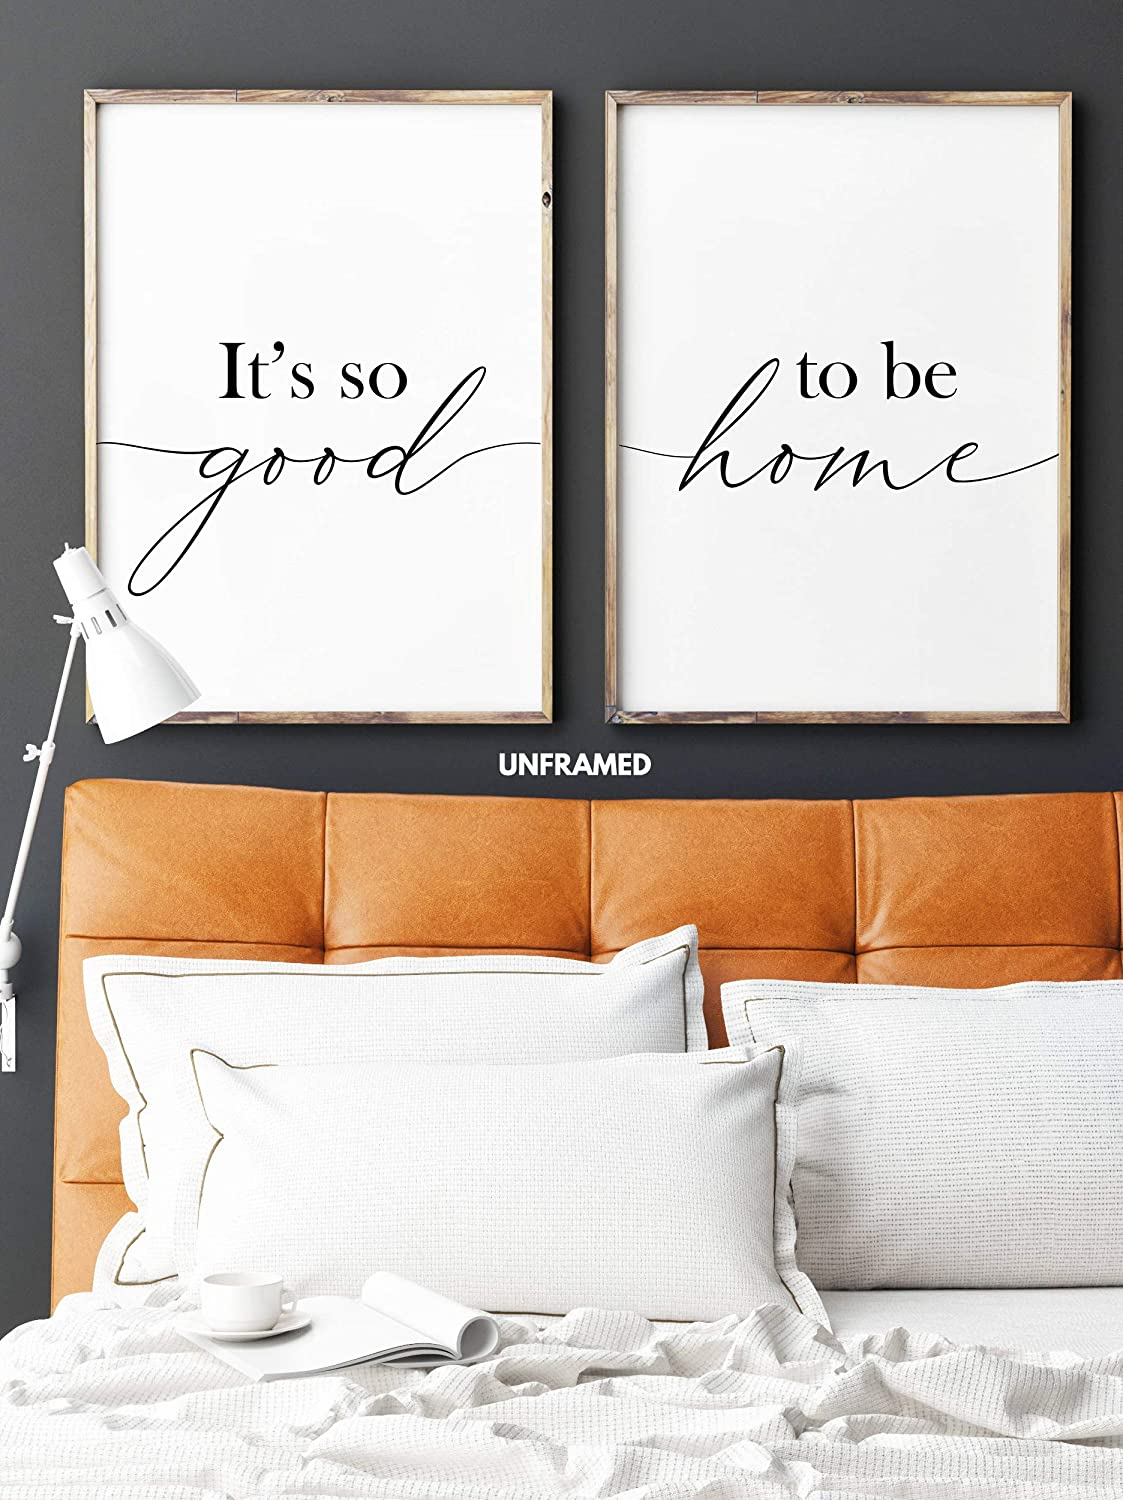 It's so Good to be Home, Unframed, 18 x 24 Inches, Set of 2, Posters, Minimalist Art Typography Art, Bedroom Wall Art, Romantic Wall Decor